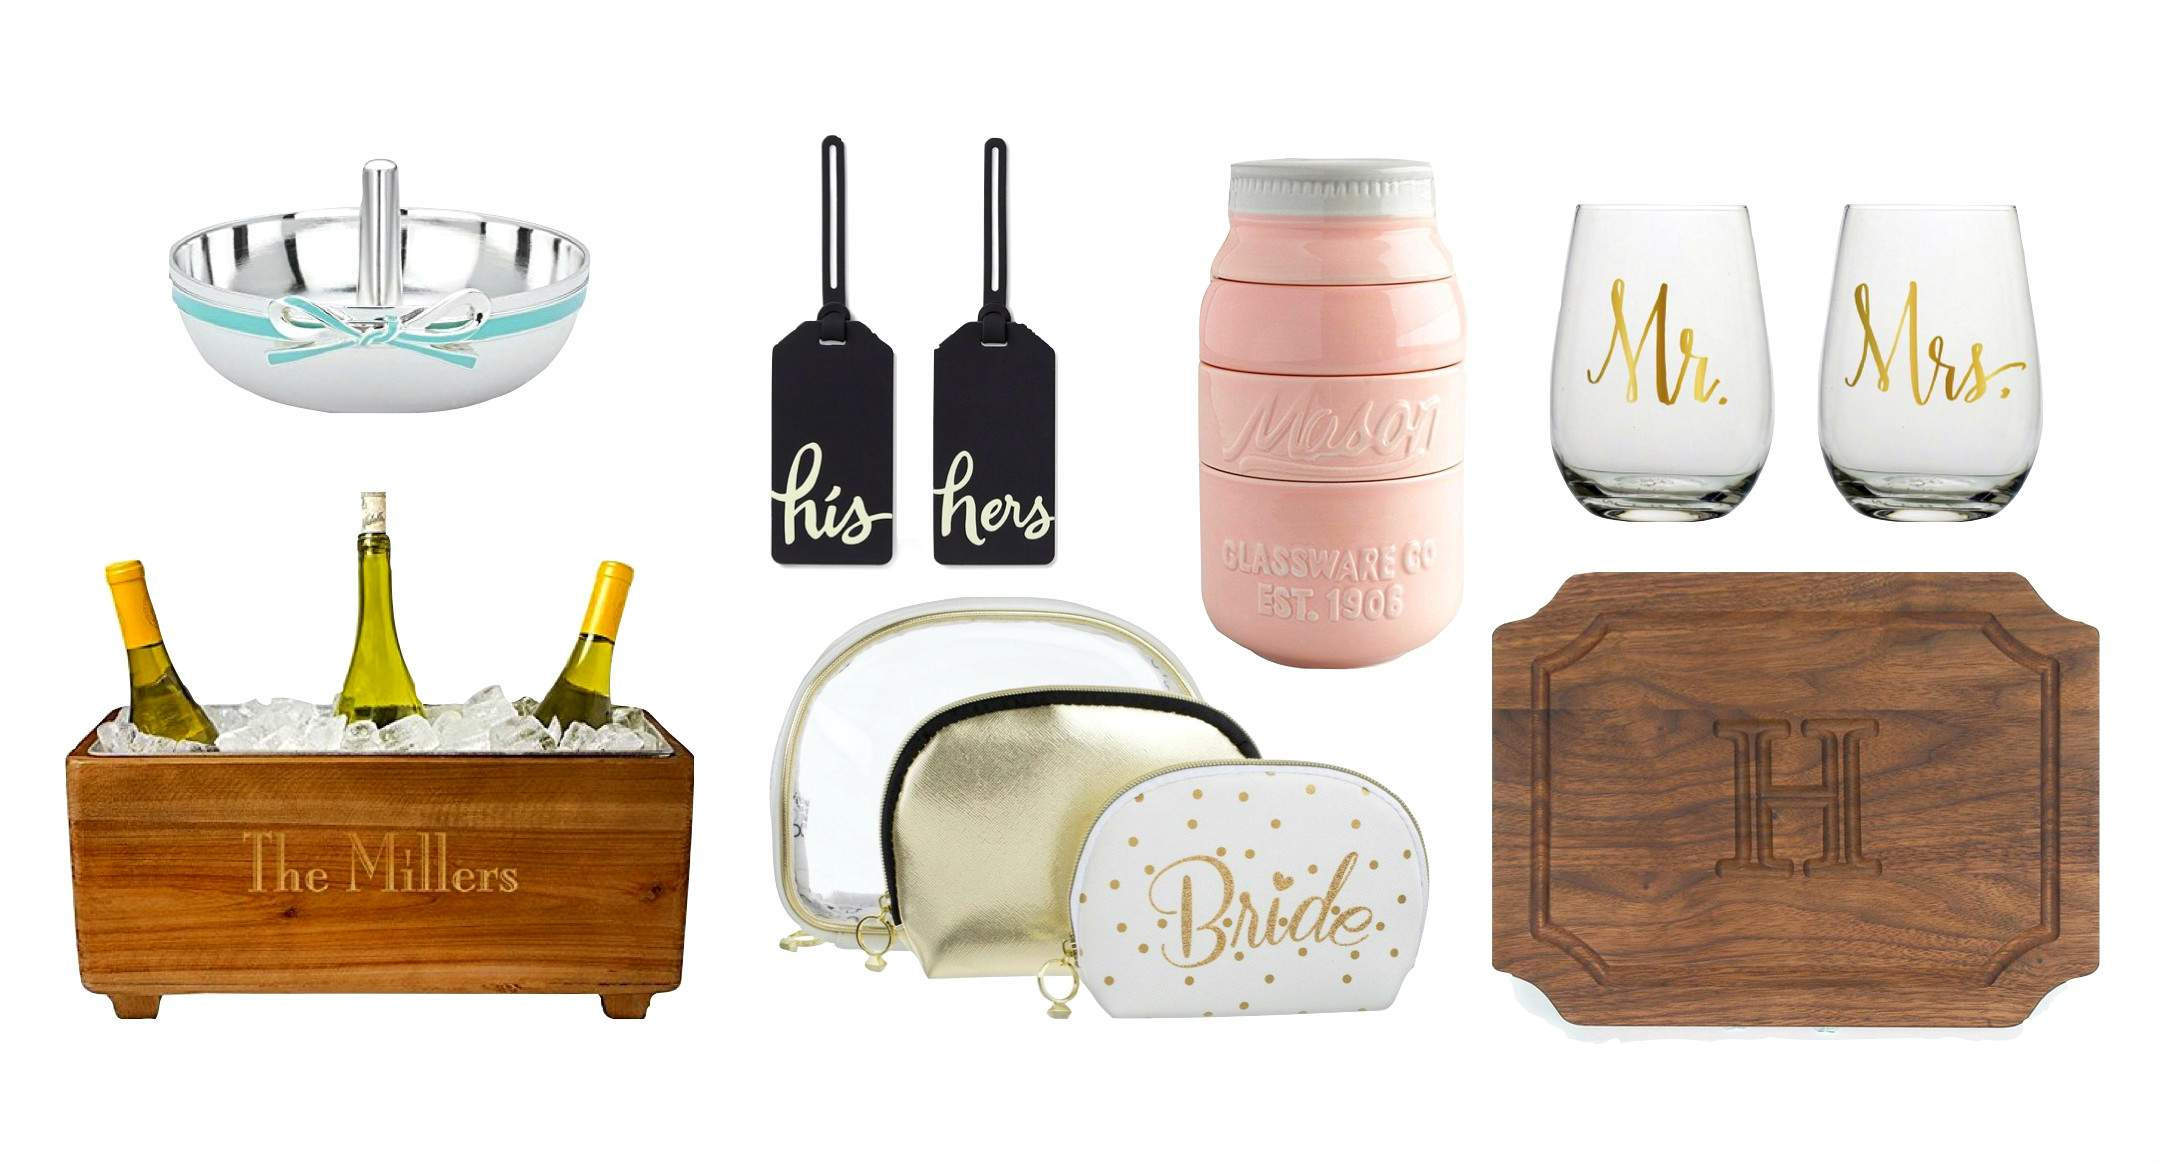 Best ideas about Bridal Shower Gift Ideas . Save or Pin Top 25 Best Bridal Shower Gifts Now.